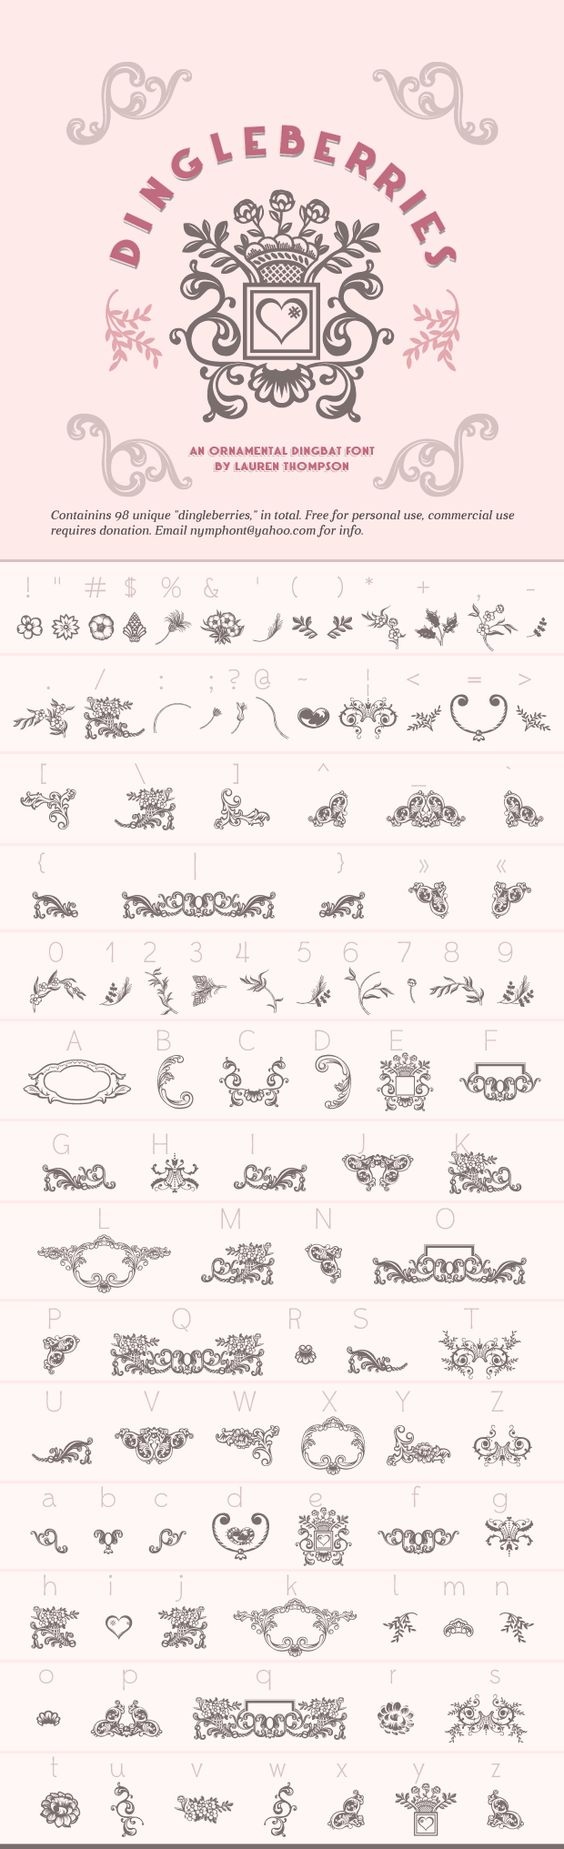 Gorgeous Dingbat Font - Dingleberries by Lauren Thompson free for personal use.